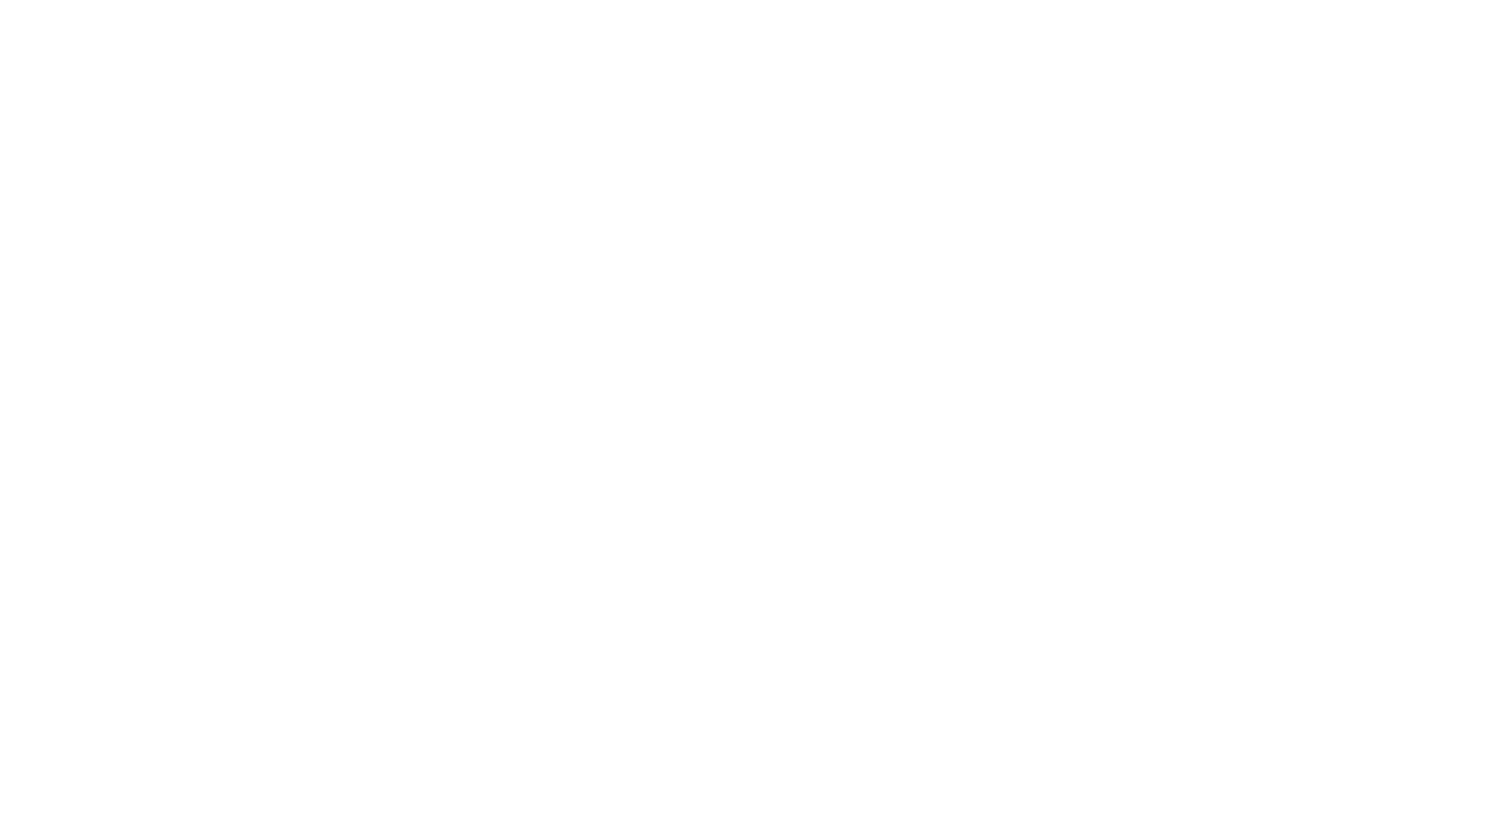 Igniting Human Potential